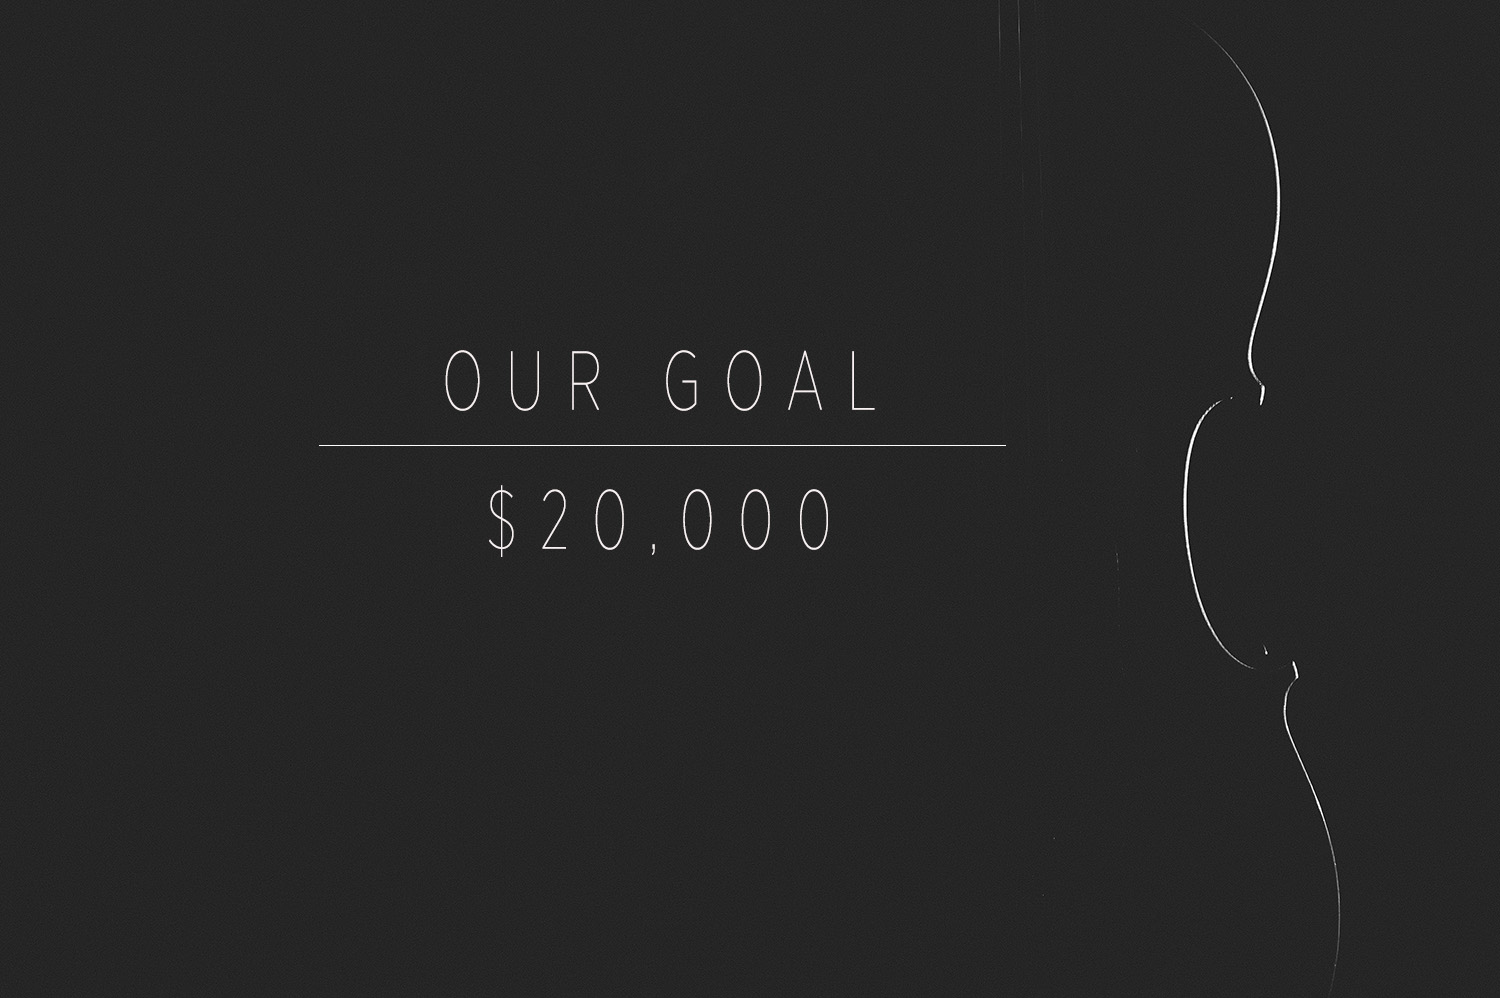 As of May 19, our goal is within reach!! With your help, we can get there!!